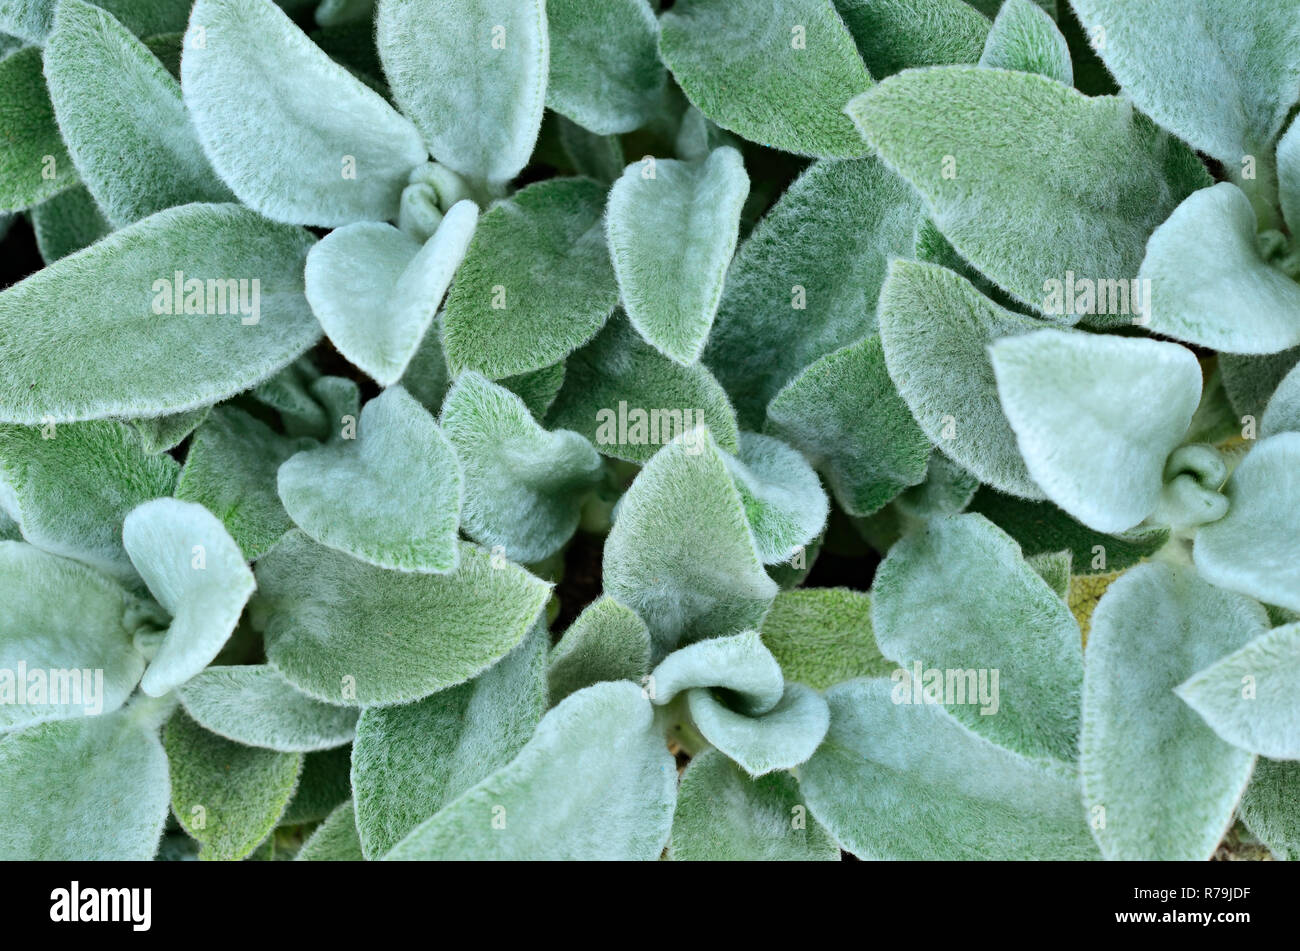 Hairy leaves of garden plants - Stock Image